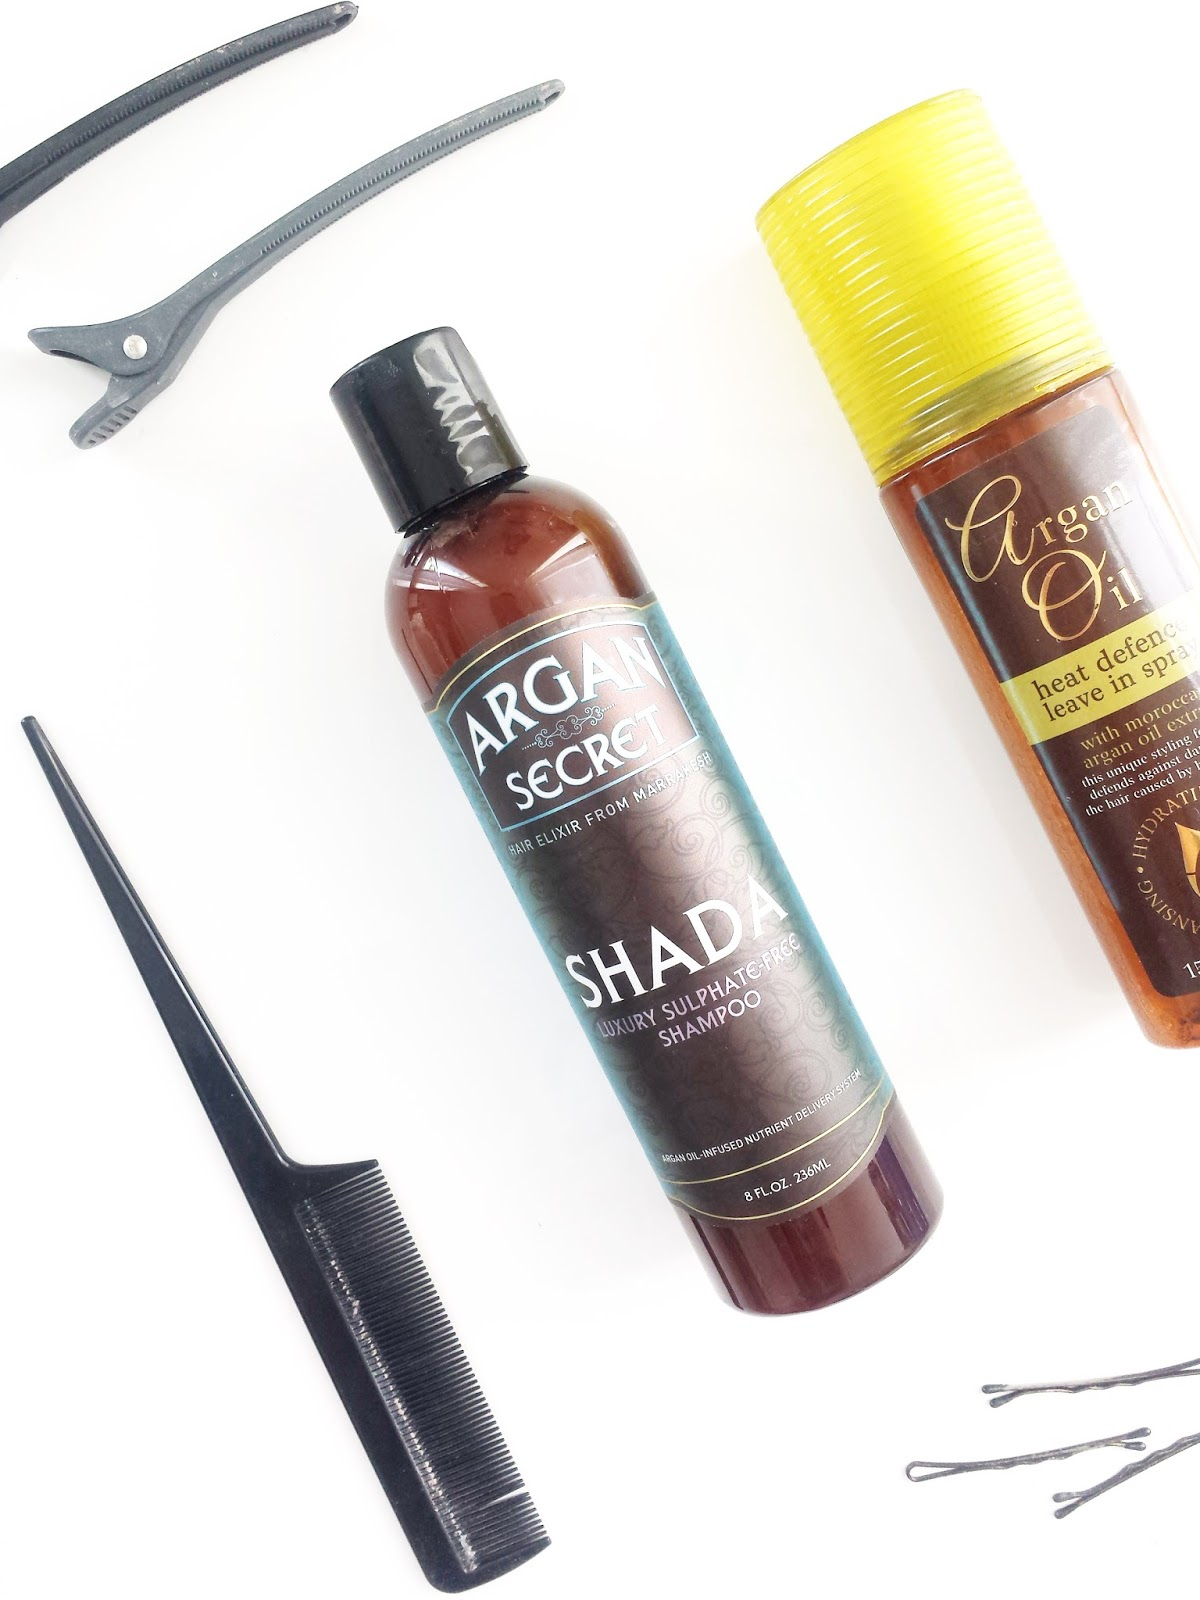 Argan Secret Shada Luxury Shampoo